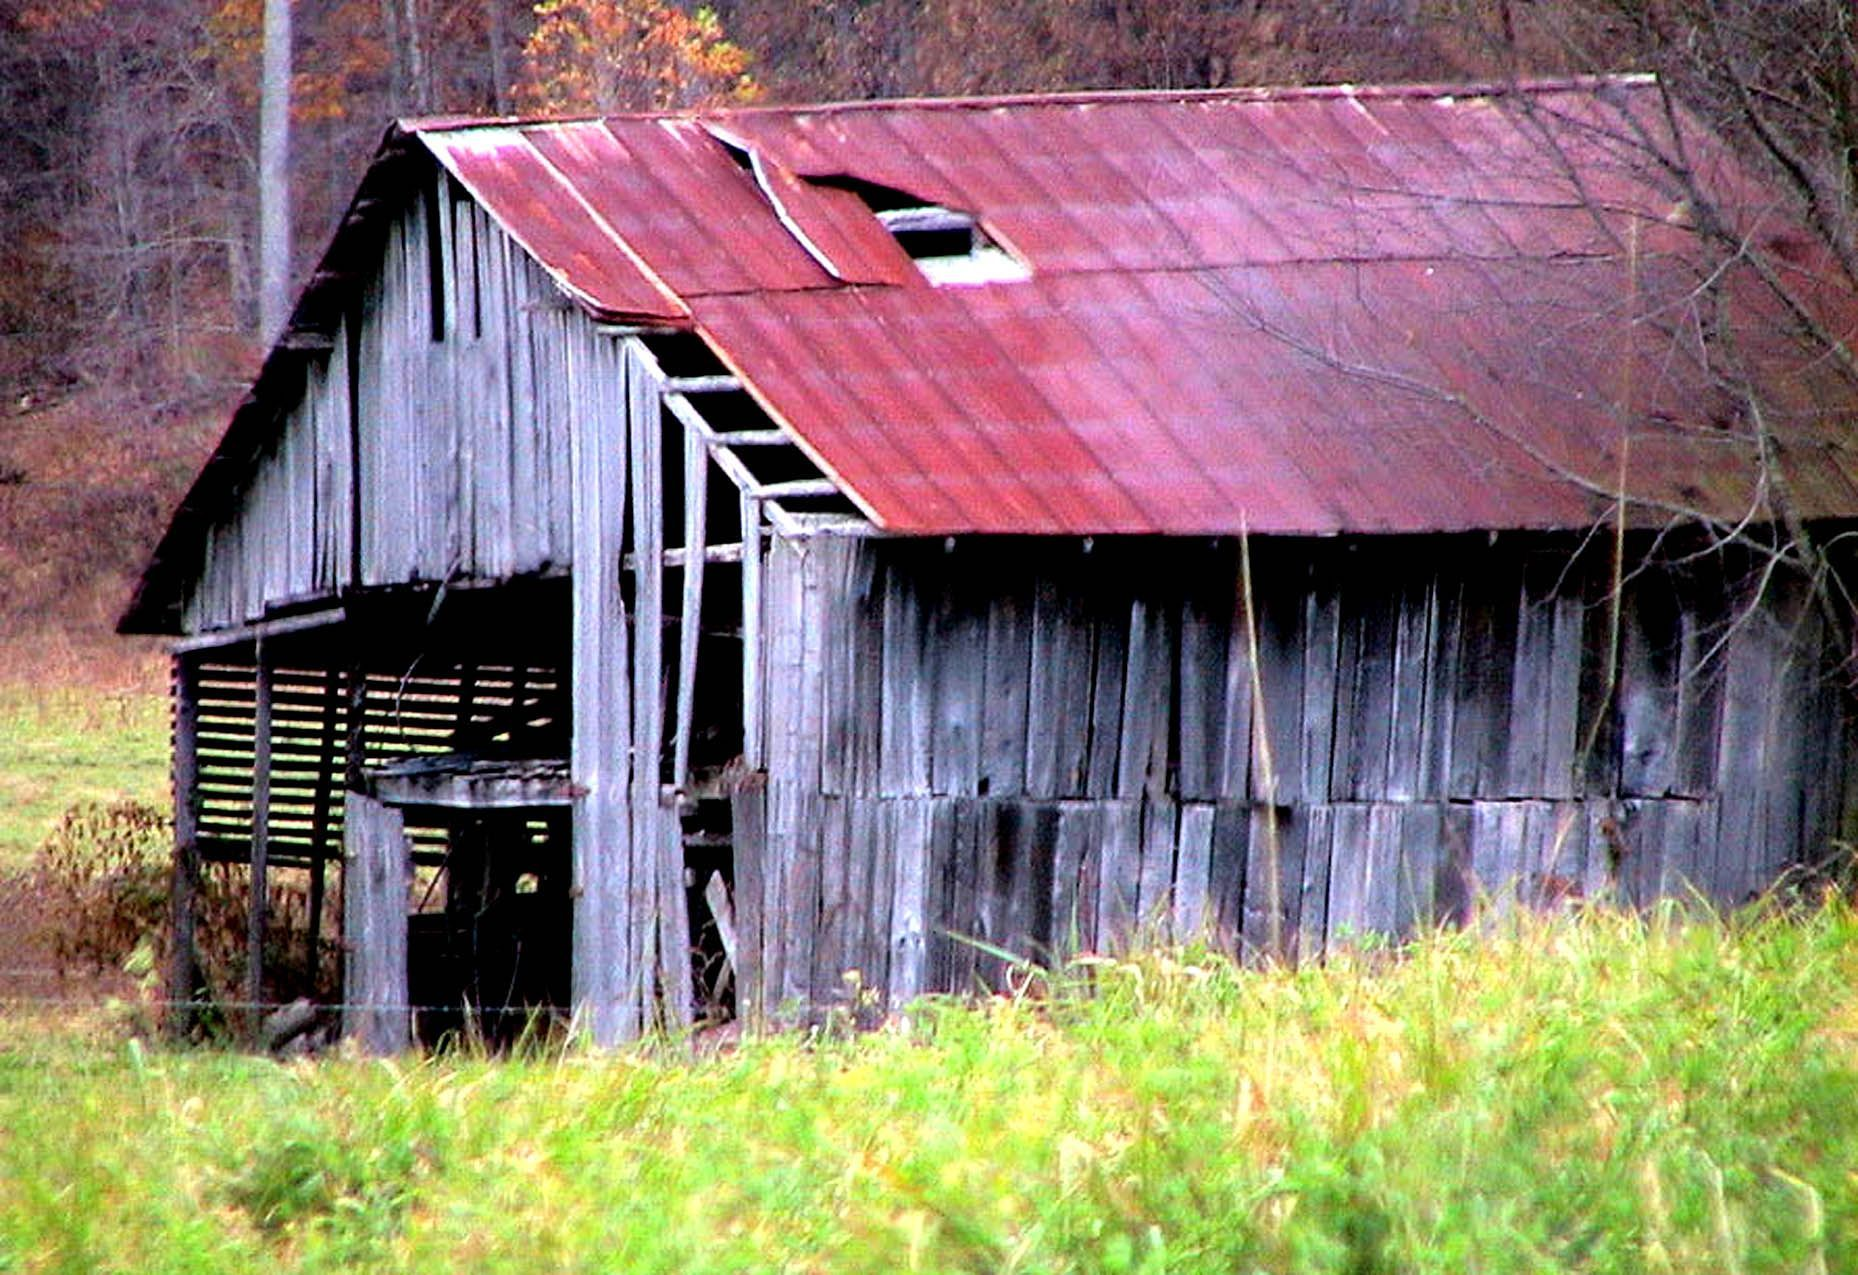 Abandoned_horse_barn_in_autumn_fall